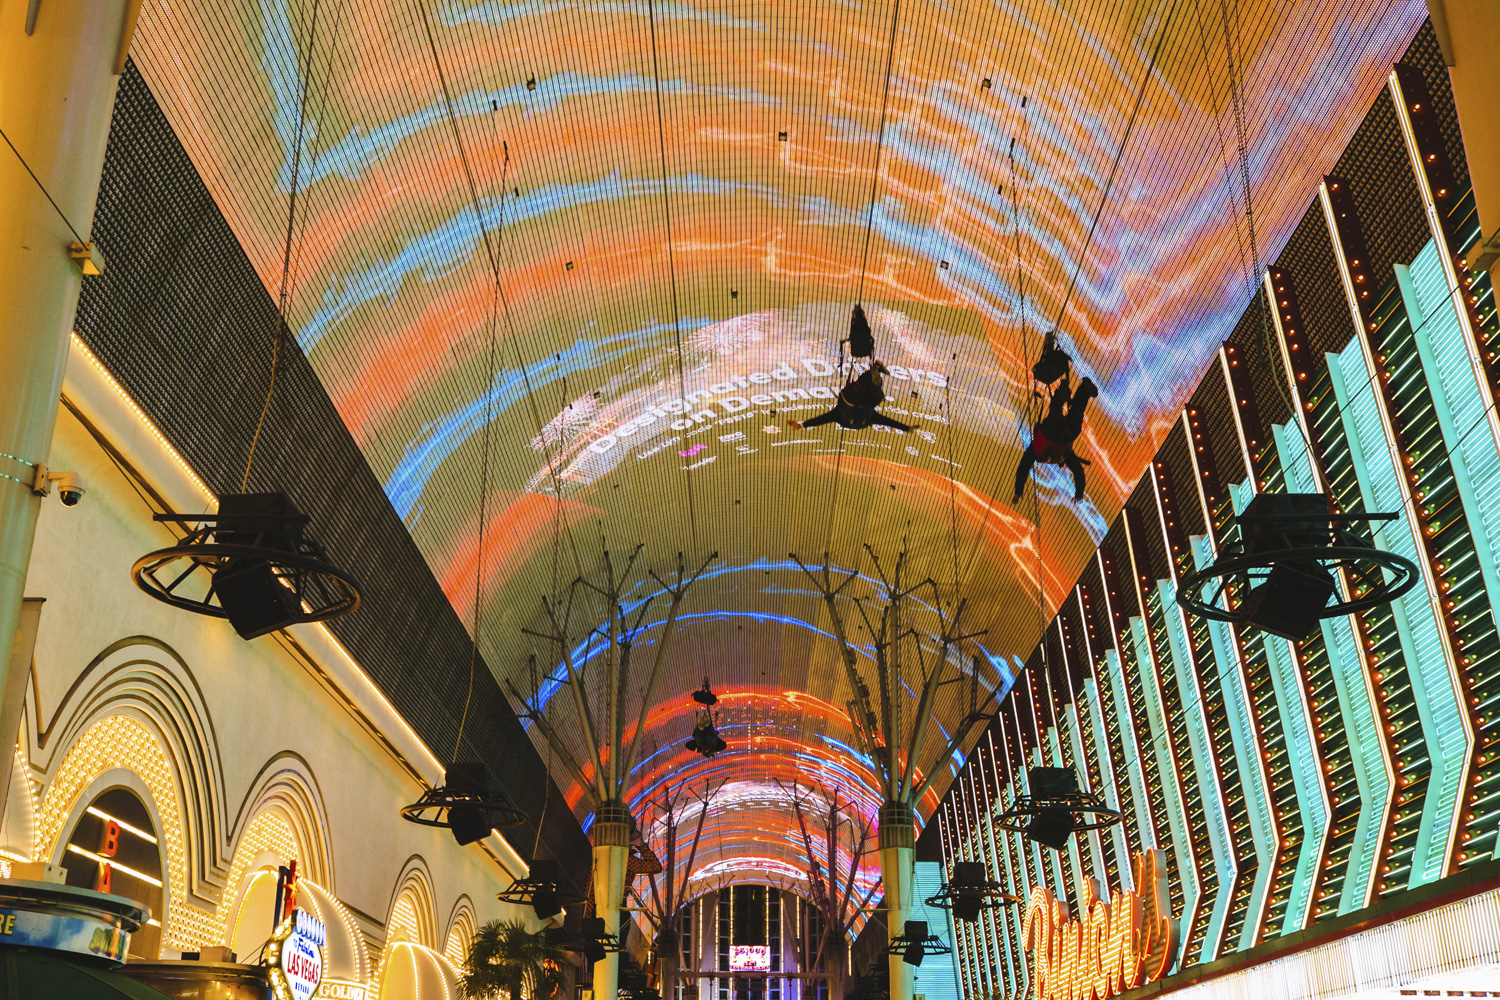 "The Fremont Street Experience. Las Vegas may be best known for its sinful side but there's more to this modern metropolis than losing your shirt. Not the gambling type? A tour of the city's faded relics at The Neon Museum is great for both history buffs and Instagramming your heart out. Get same-day discount tickets to check out one (or more) of Cirque Du Soleil's seven different local shows for a masterful performance. Vegas is a hotbed of buzz-worthy eateries that don't involve buffets, so do your tummy a favor try the melt-in-your-mouth pork belly buns at Momofuku and don't even think about leaving before digging into the neighboring Milk Bar's cereal milk ice cream with cornflake crunch. It really does taste just like the milk at the bottom of a bowl of cornflakes! And while you can no longer catch Britney Spears like us, there are countless headlining musical acts in town that redefine the term ""production."" From Flying high down the Fremont Street zip-line to pretending you're in the movies in front of the Bellagio fountains, don't miss out on all Las Vegas has to offer just outside the casinos. (Image: Sunita Martini)"